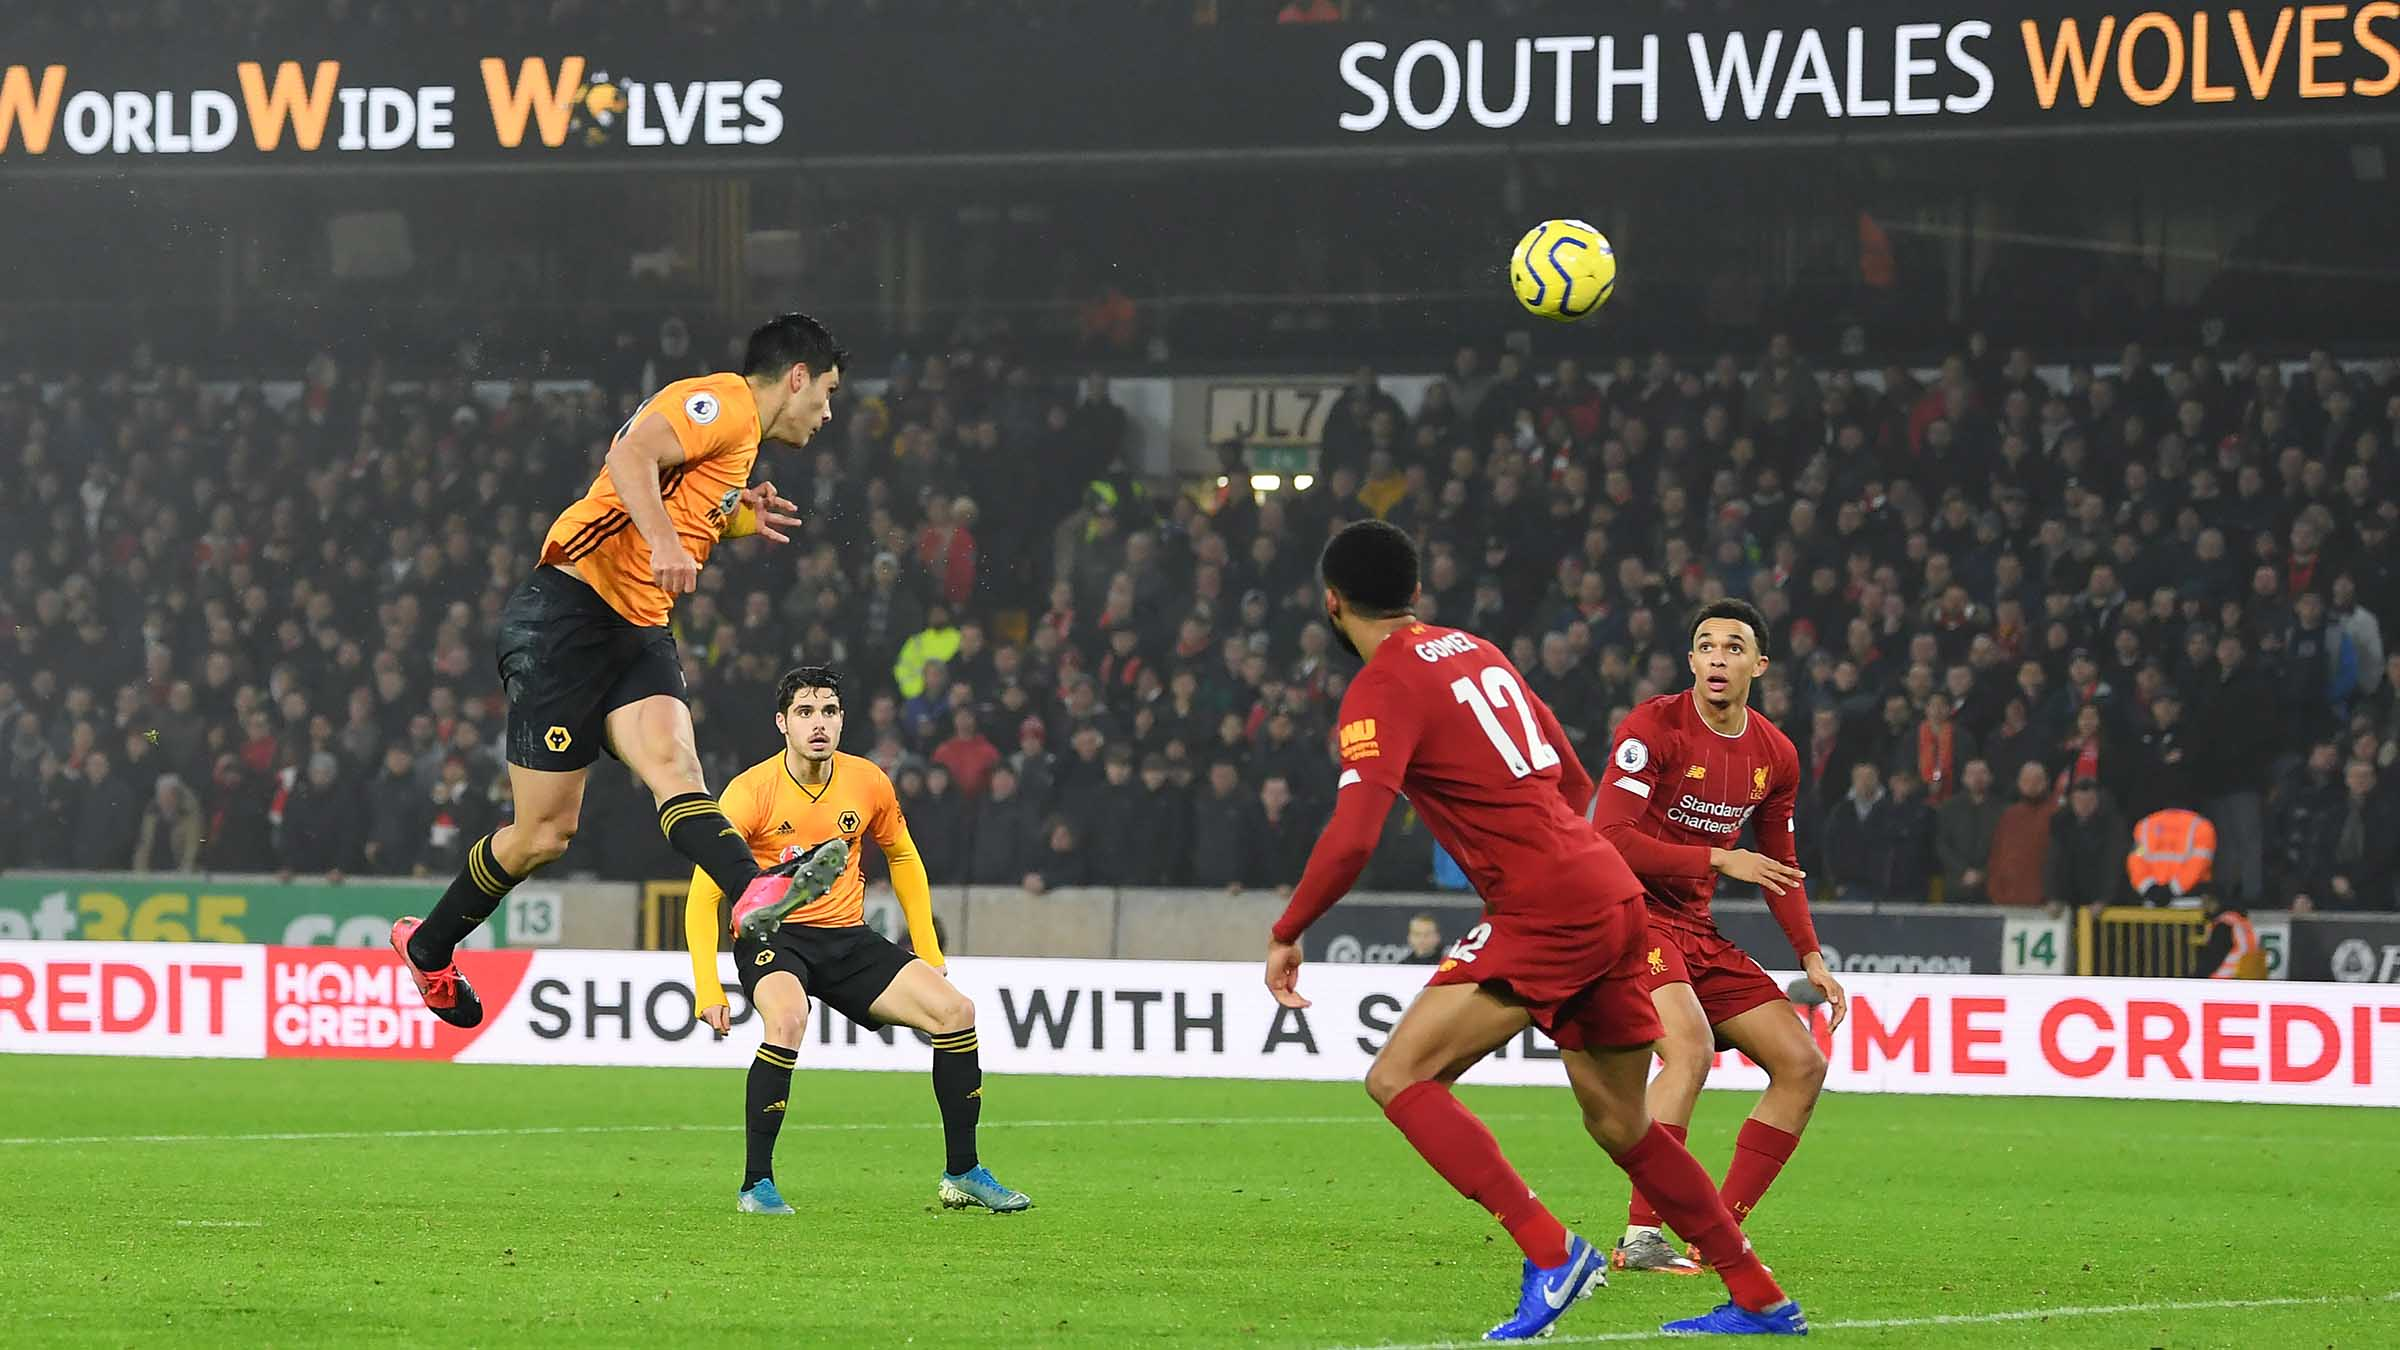 Wolves 1-2 Liverpool | 5 things we spotted